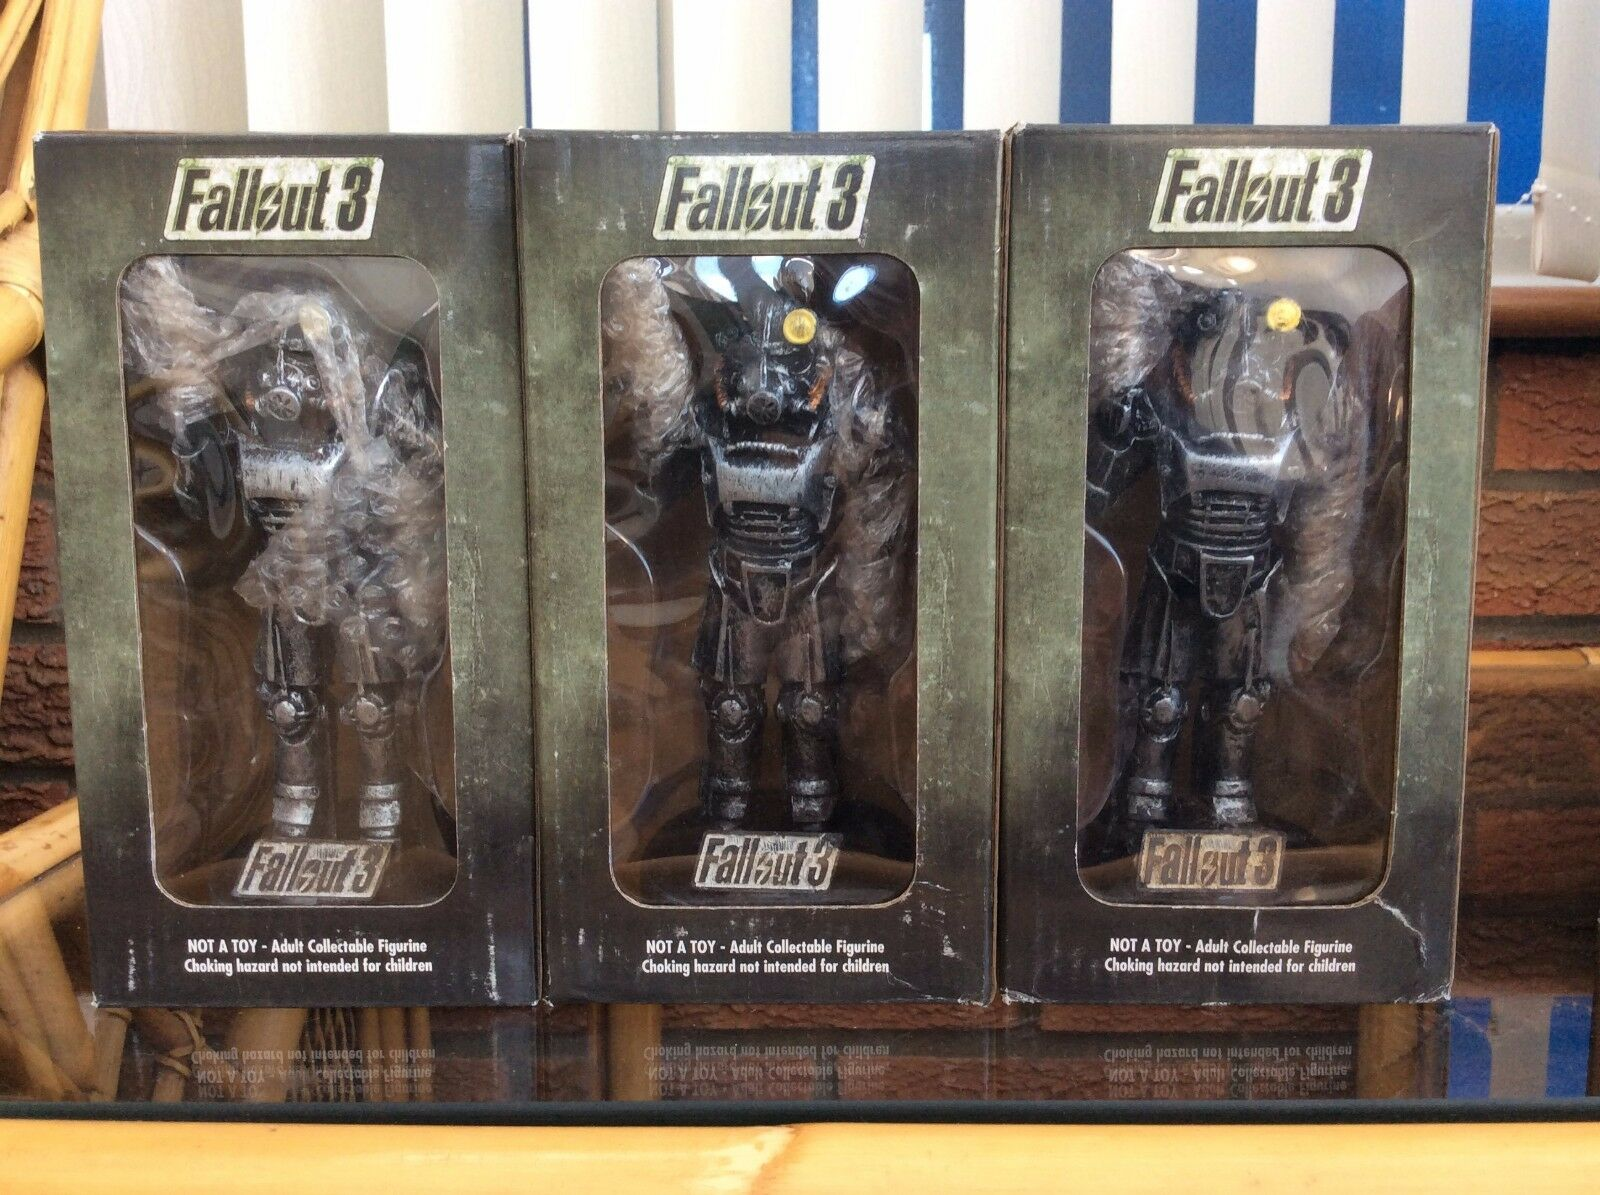 Fallout 3 Limited Edition Brotherhood Of Steel Statue